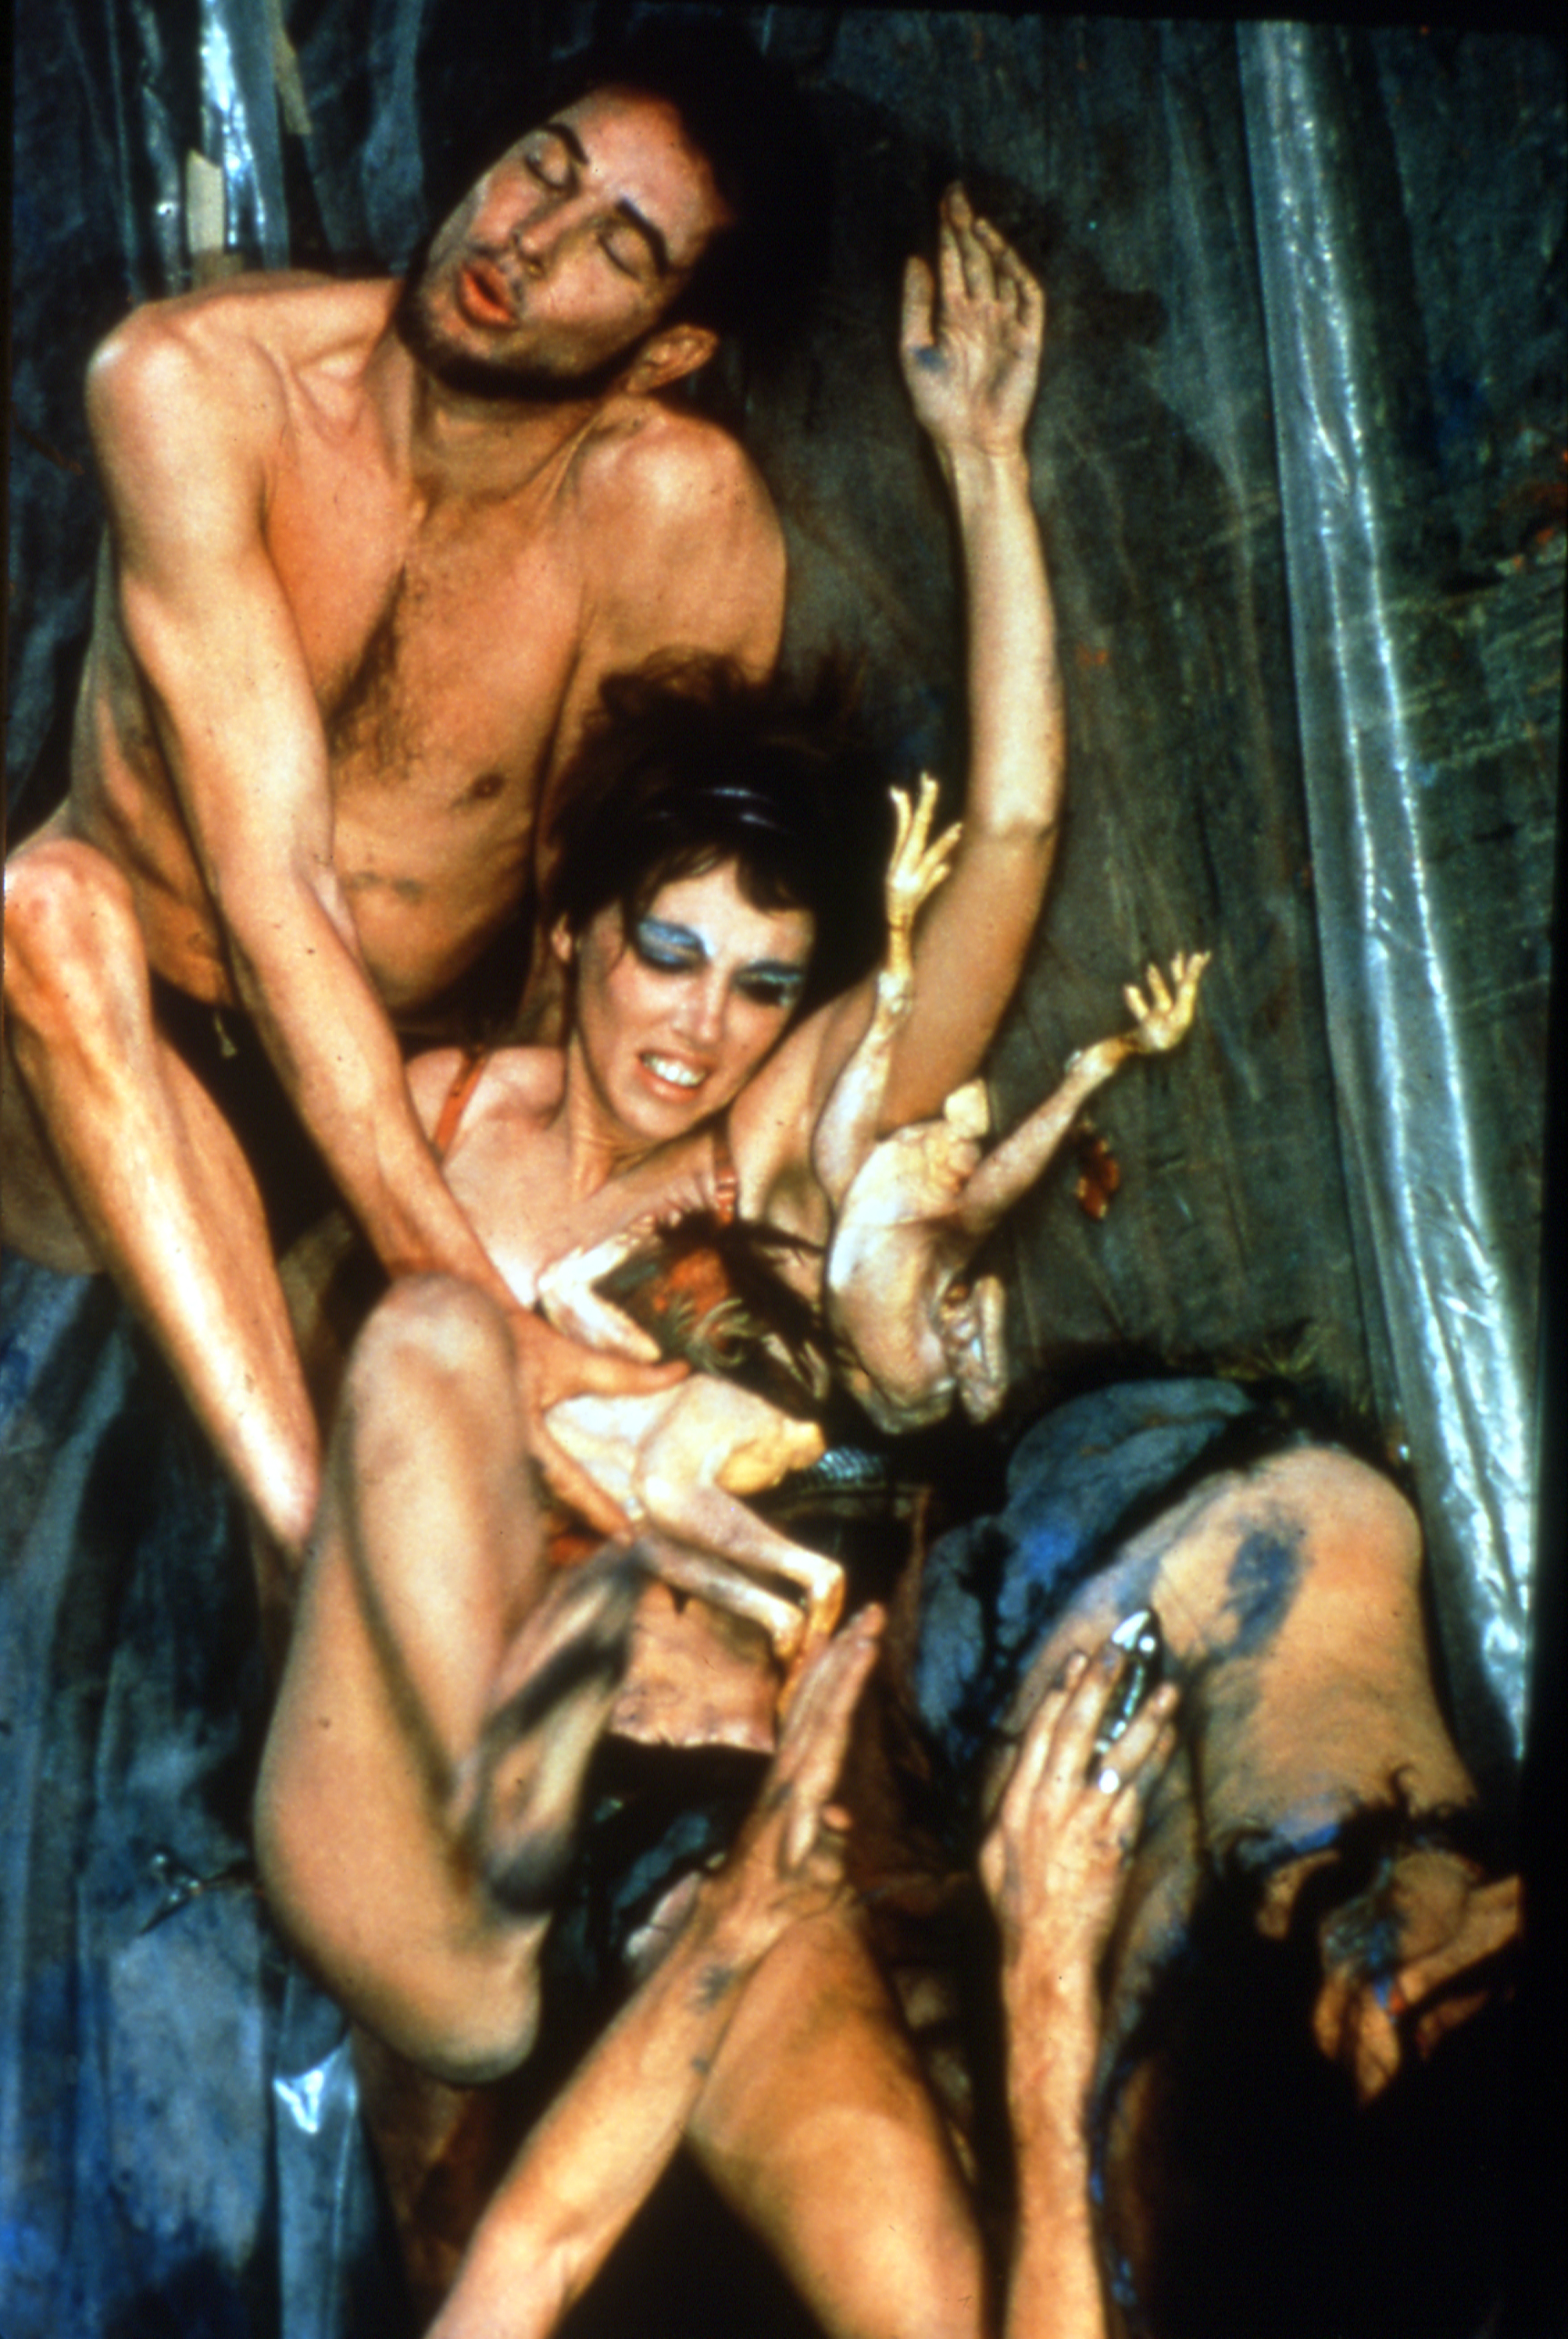 Carolee Schneemann, Meat Joy, 1964. Performance, raw fish, chickens, sausages, wet paint, plastic rope, paper scraPS. Judson Church, NYC. Photograph by Al Giese